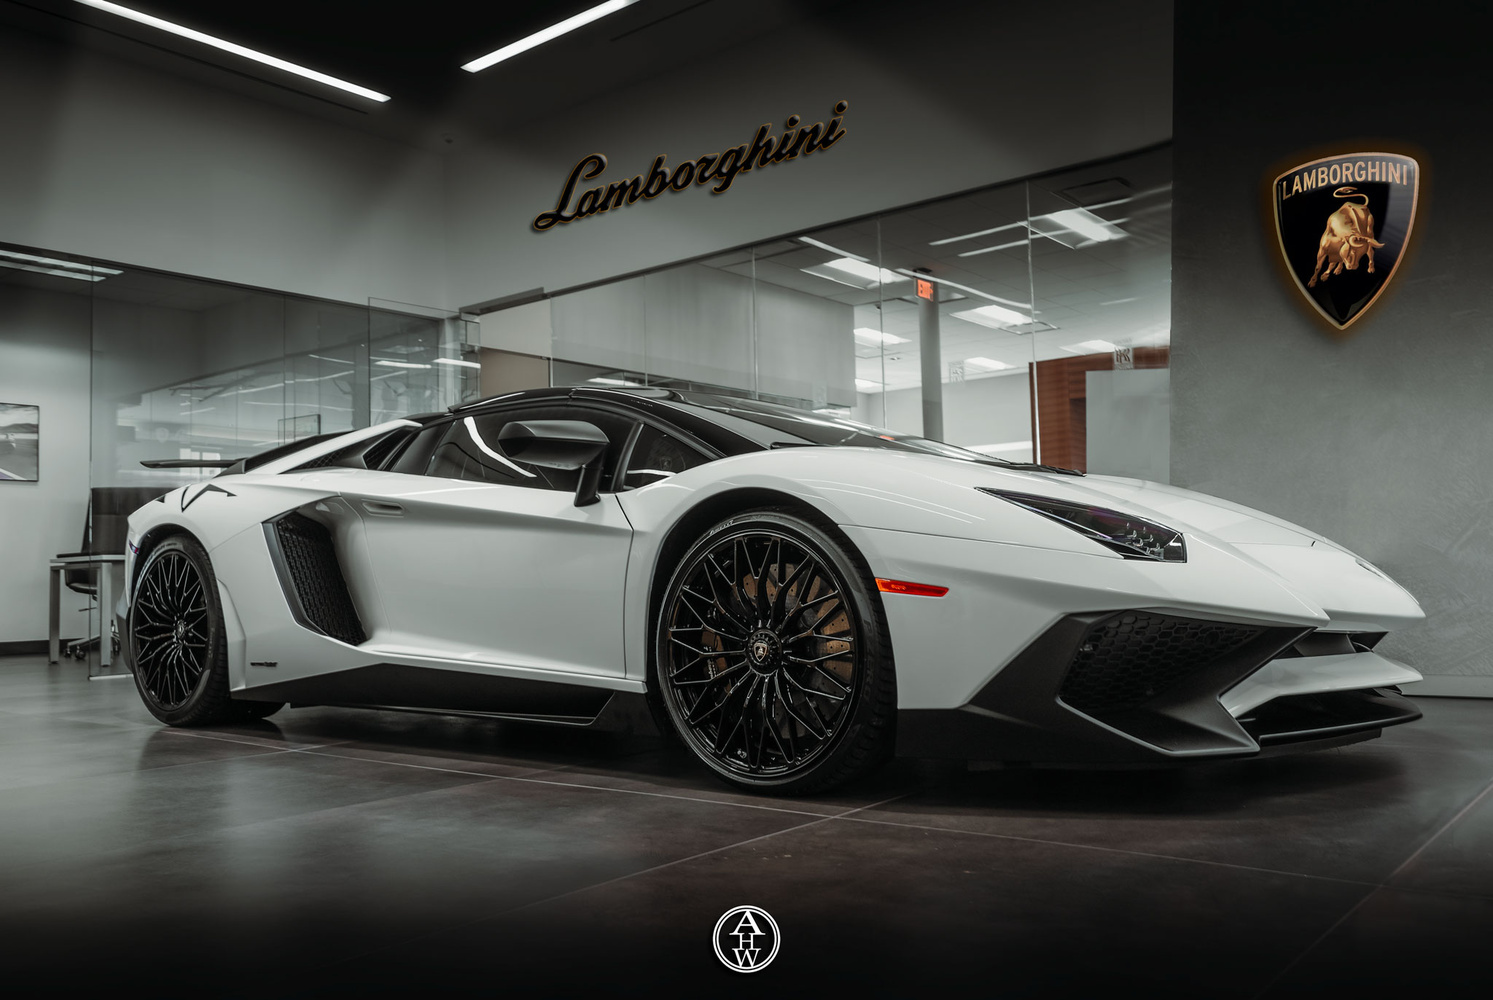 Aventador SV by Andrew Wiest